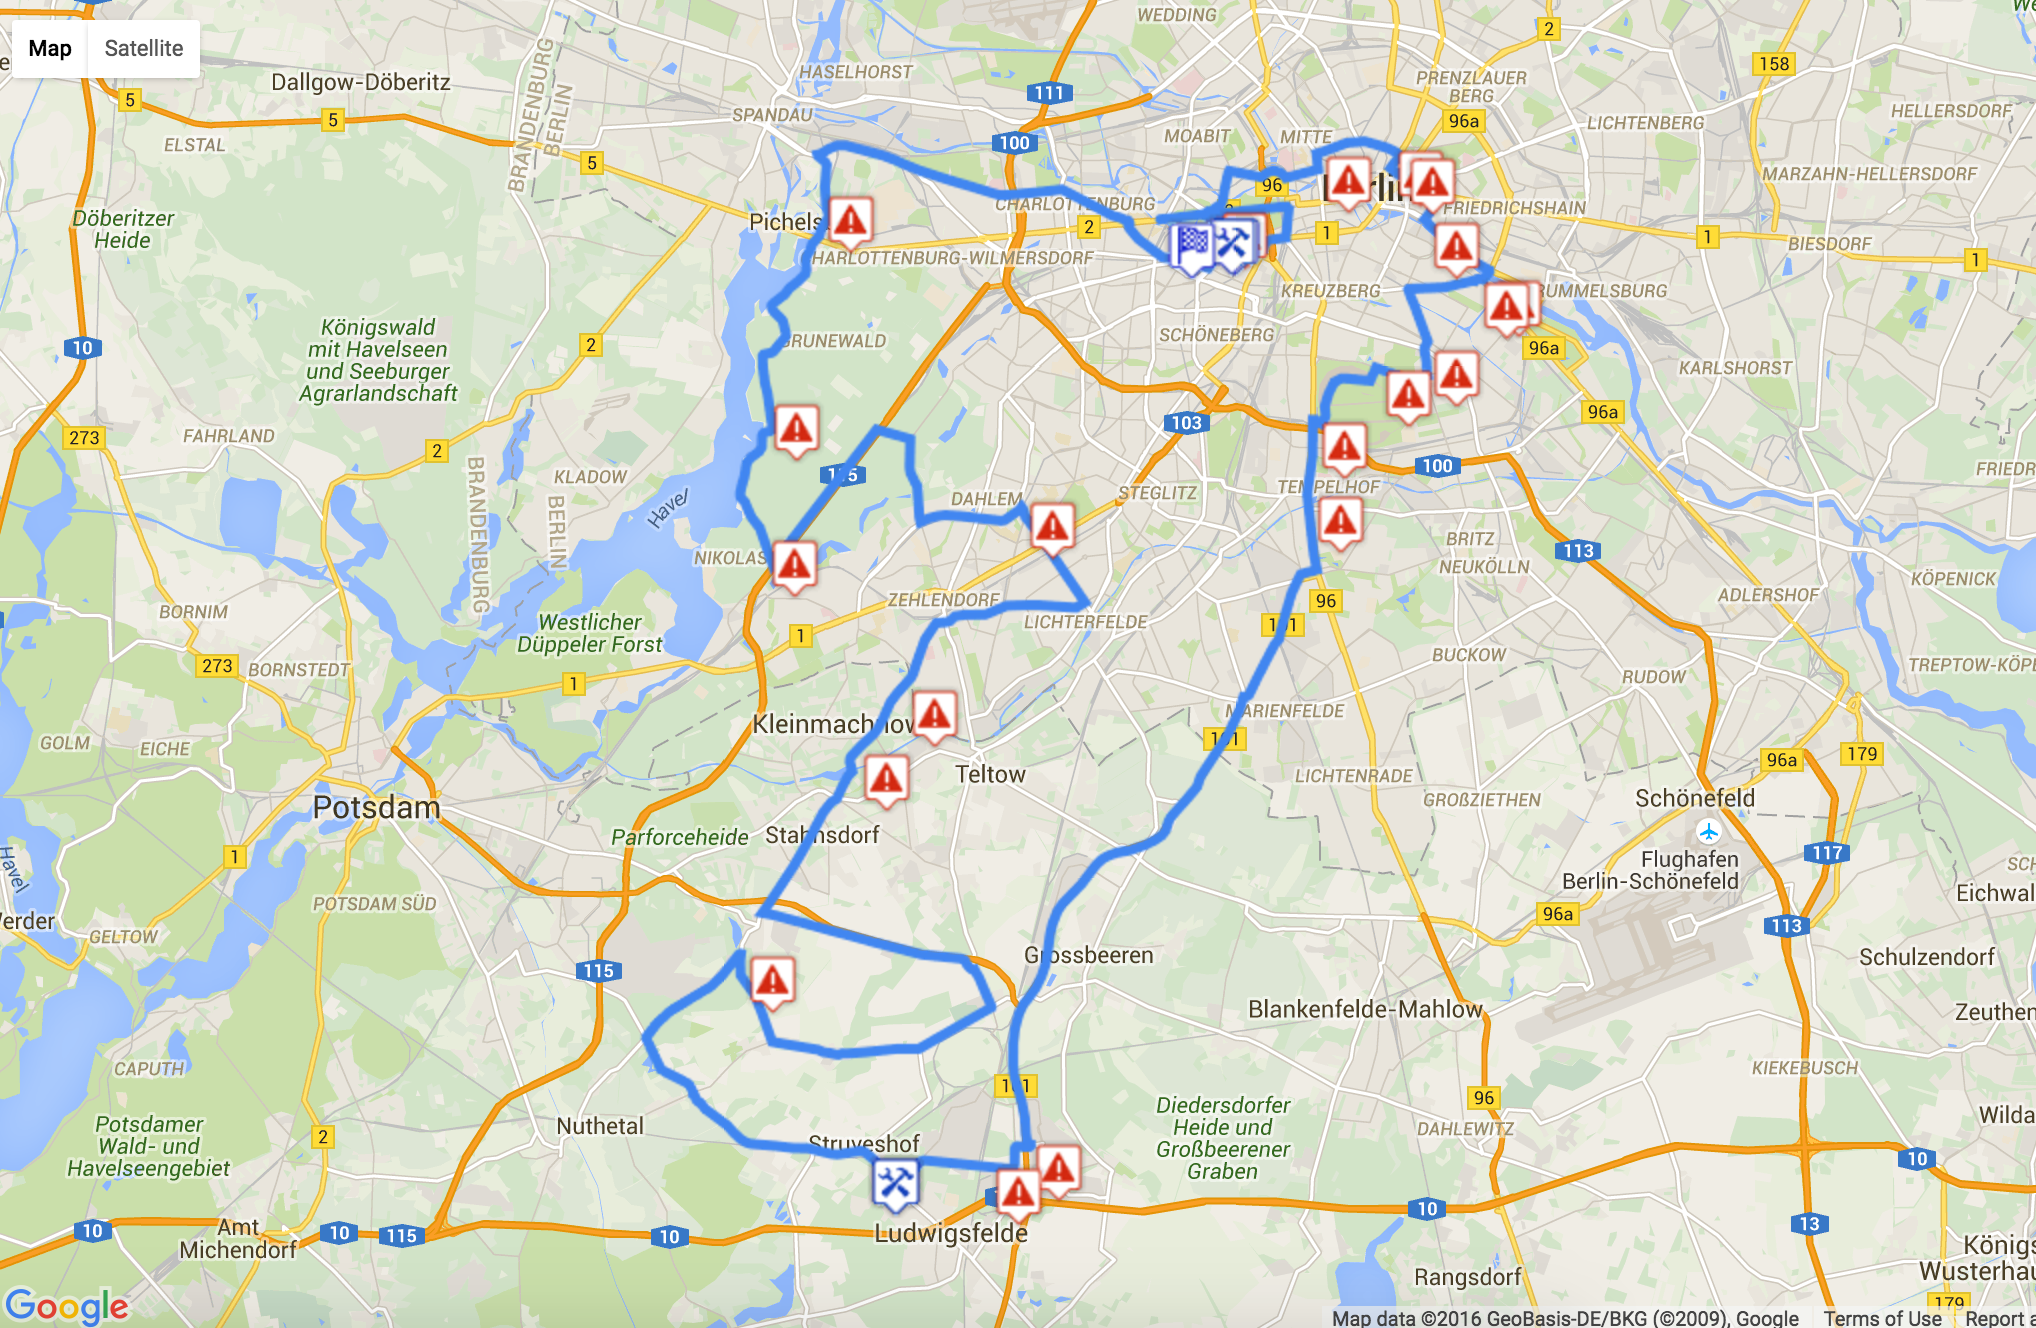 The 120km route